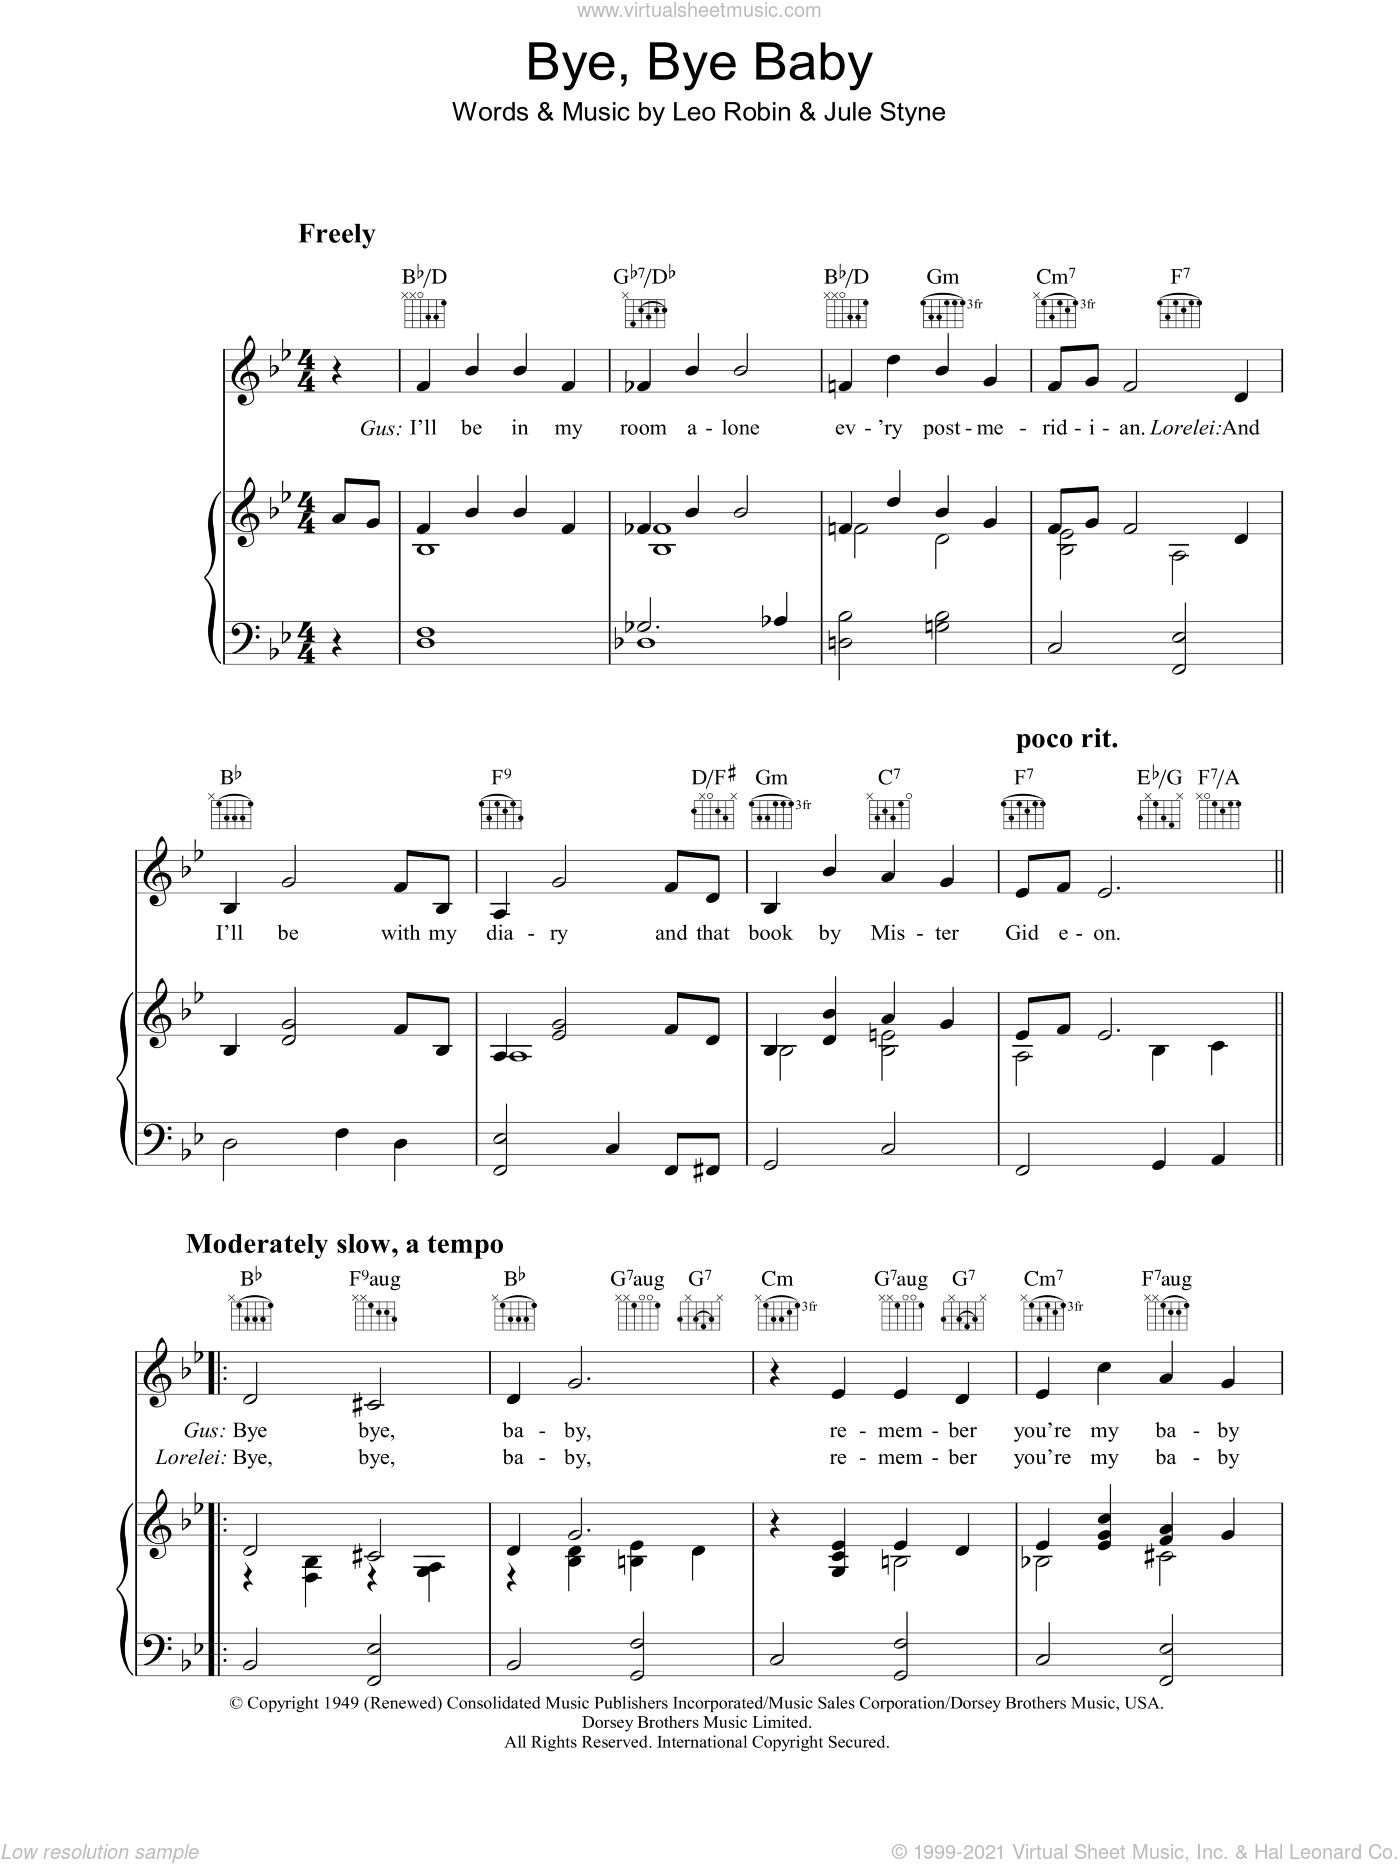 Bye Bye Baby sheet music for voice, piano or guitar by Marilyn Monroe, Jule Styne and Leo Robin, intermediate skill level